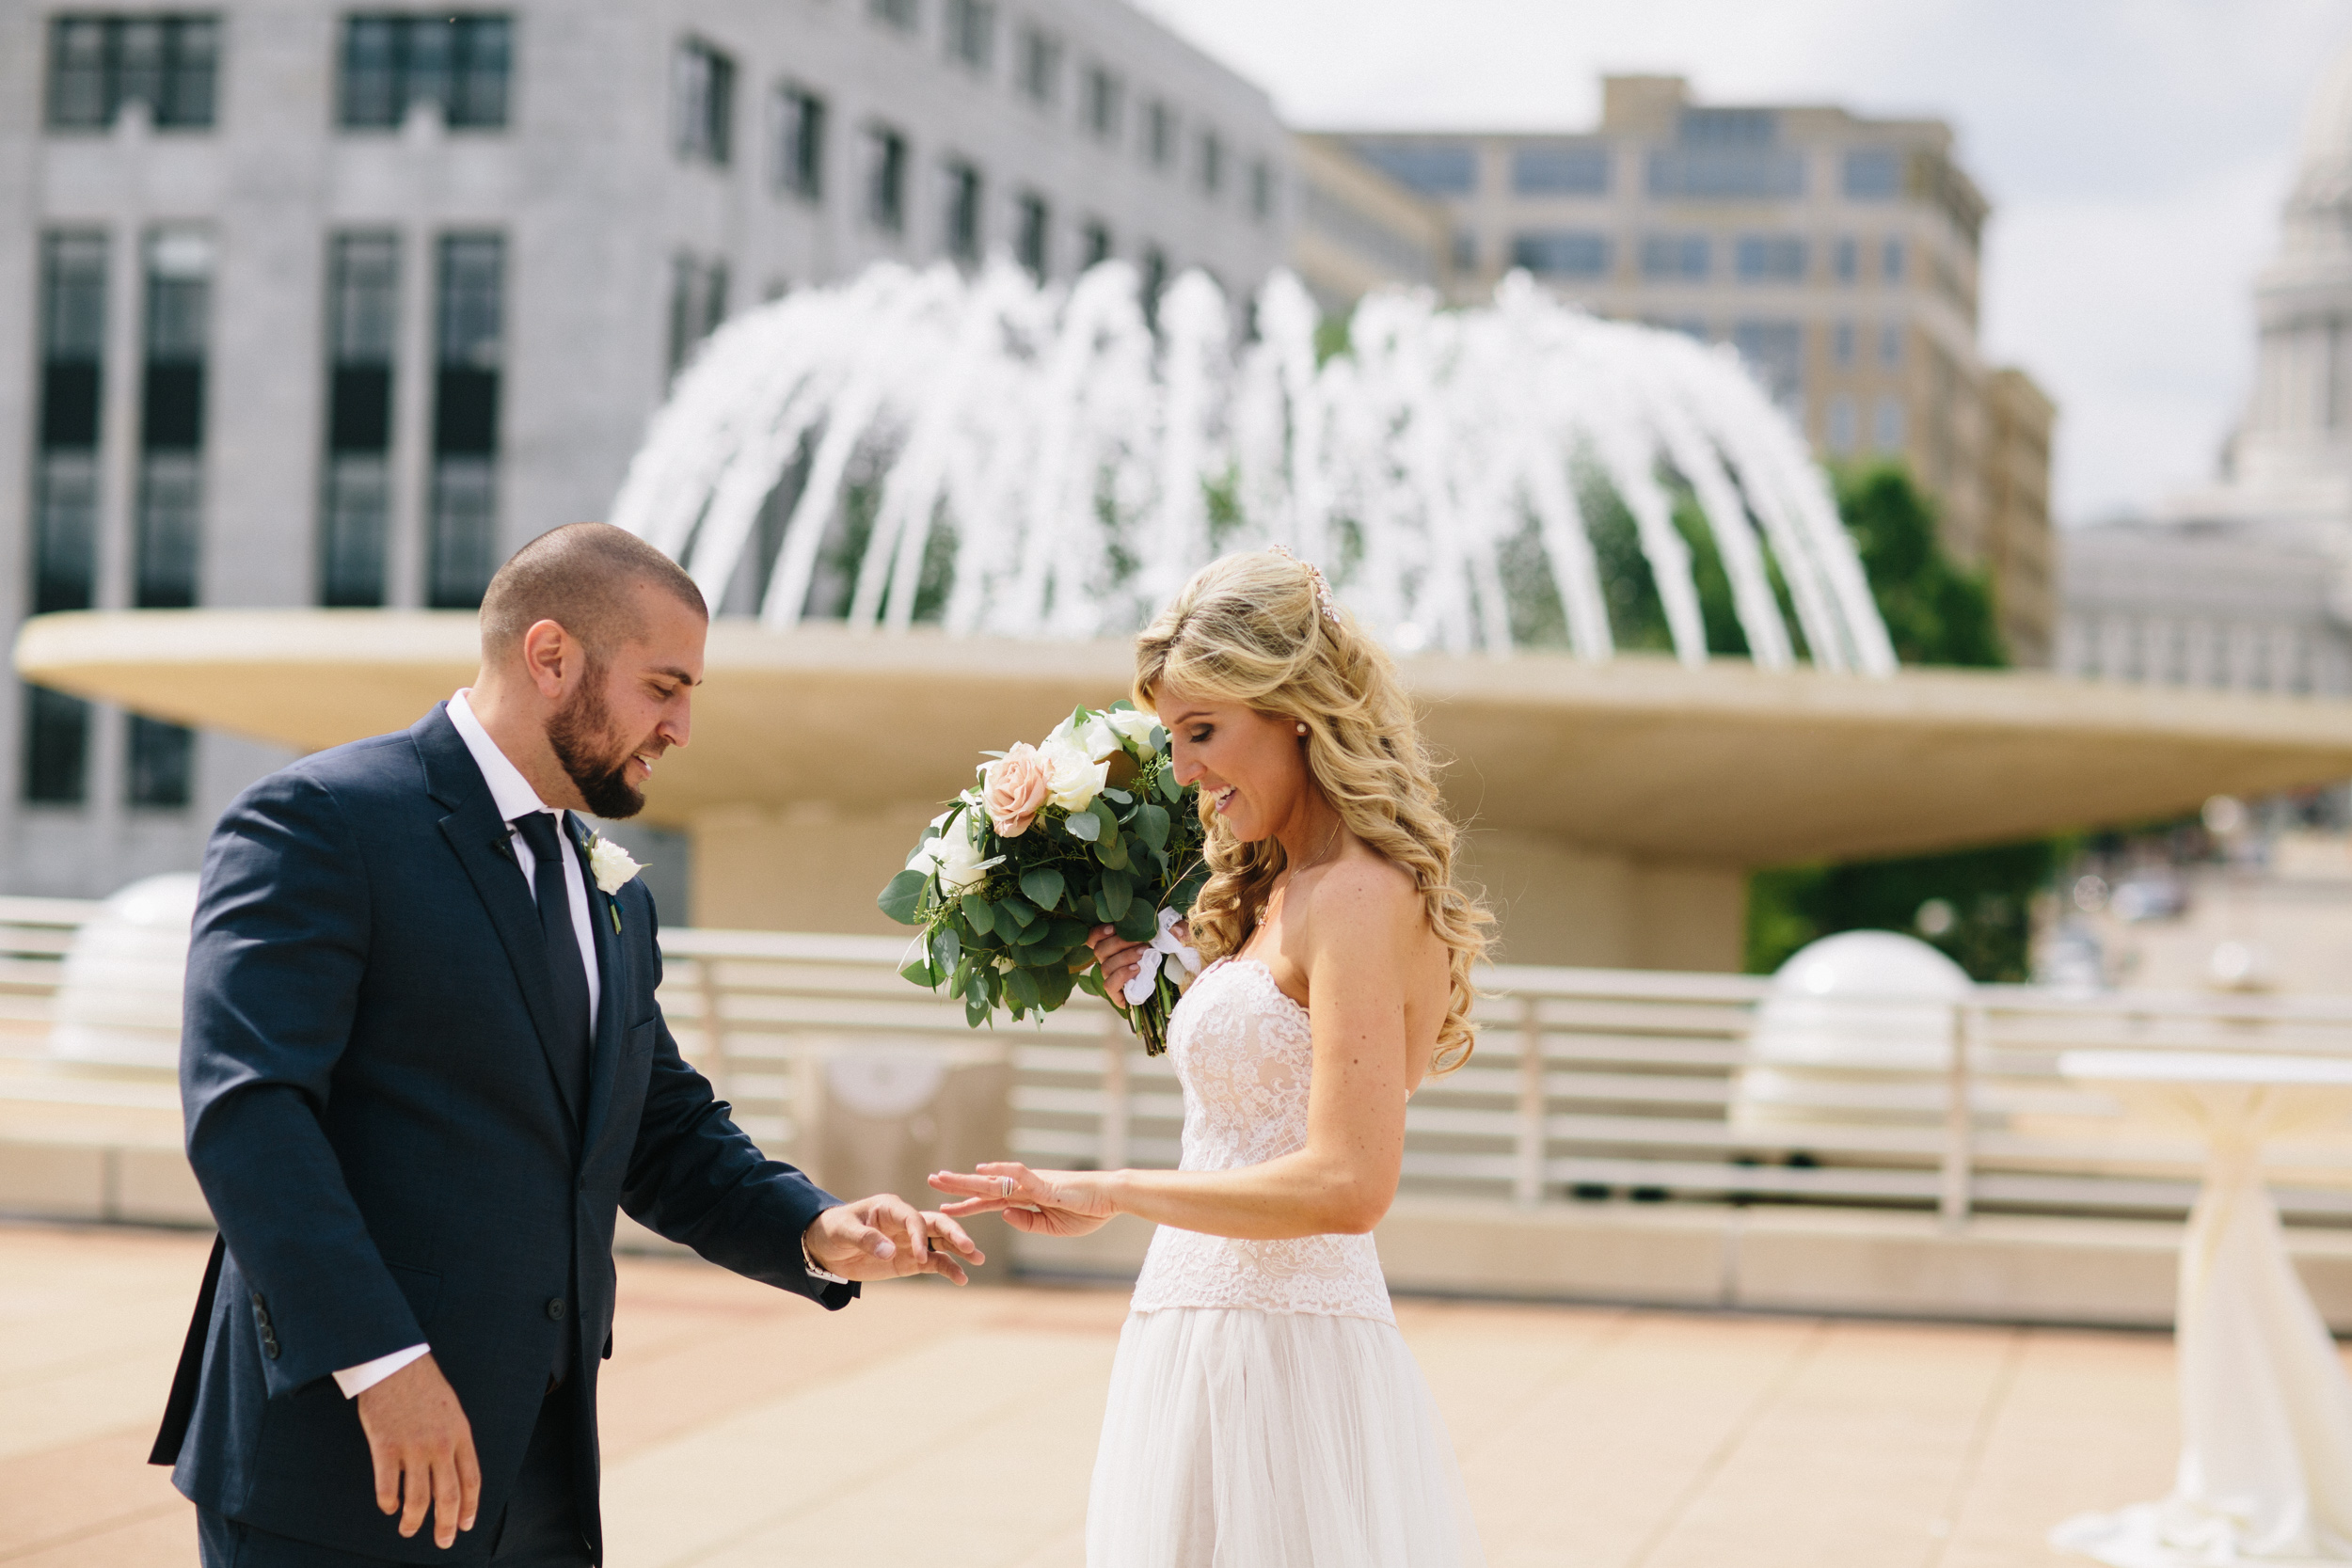 5-27-2017 Lindsay and Eric wedding photography by Brian Milo-130.jpg